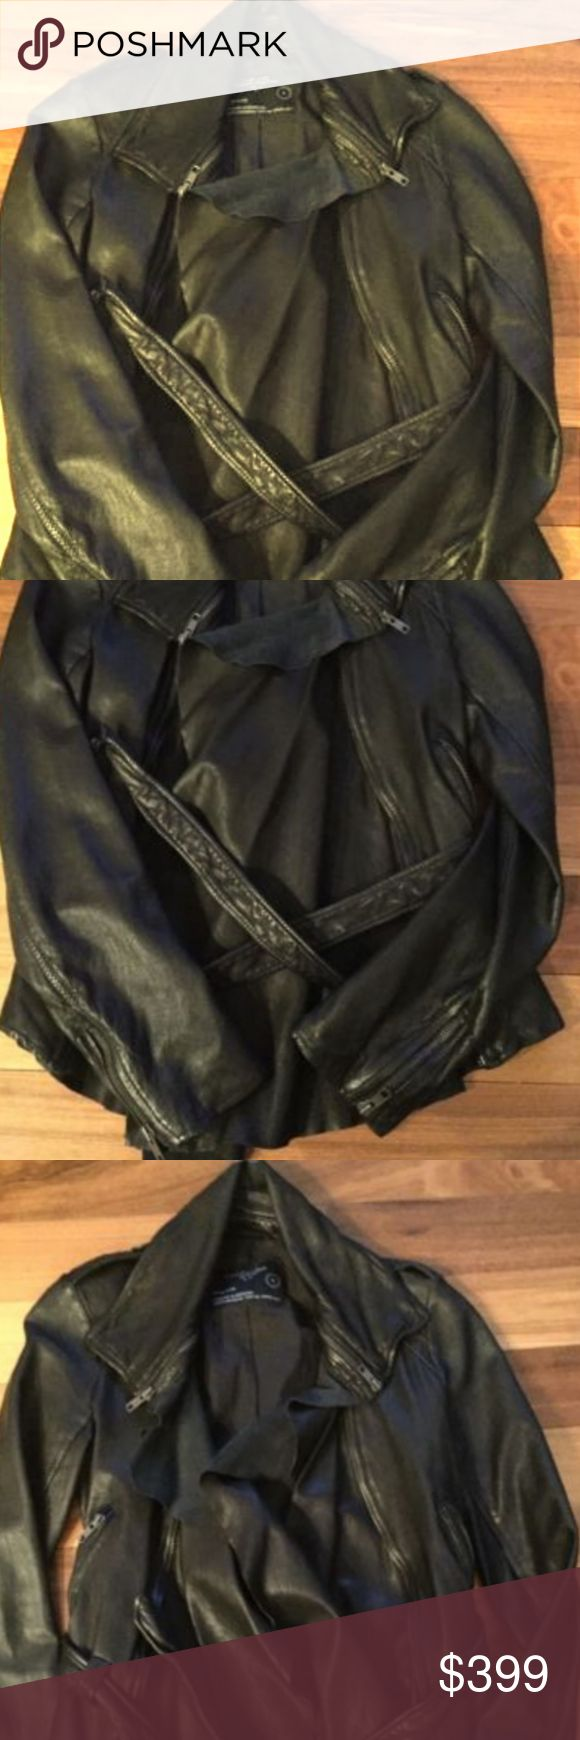 Auth AllSaints Black leather biker jacker size 6 NWOT Authentic AllSaints Black Leather Belted Biker Jacket Size US 6. There is a slash on the back of the collar that can be fixed by a leather repair shop. It is a new jacket. All Saints Jackets & Coats